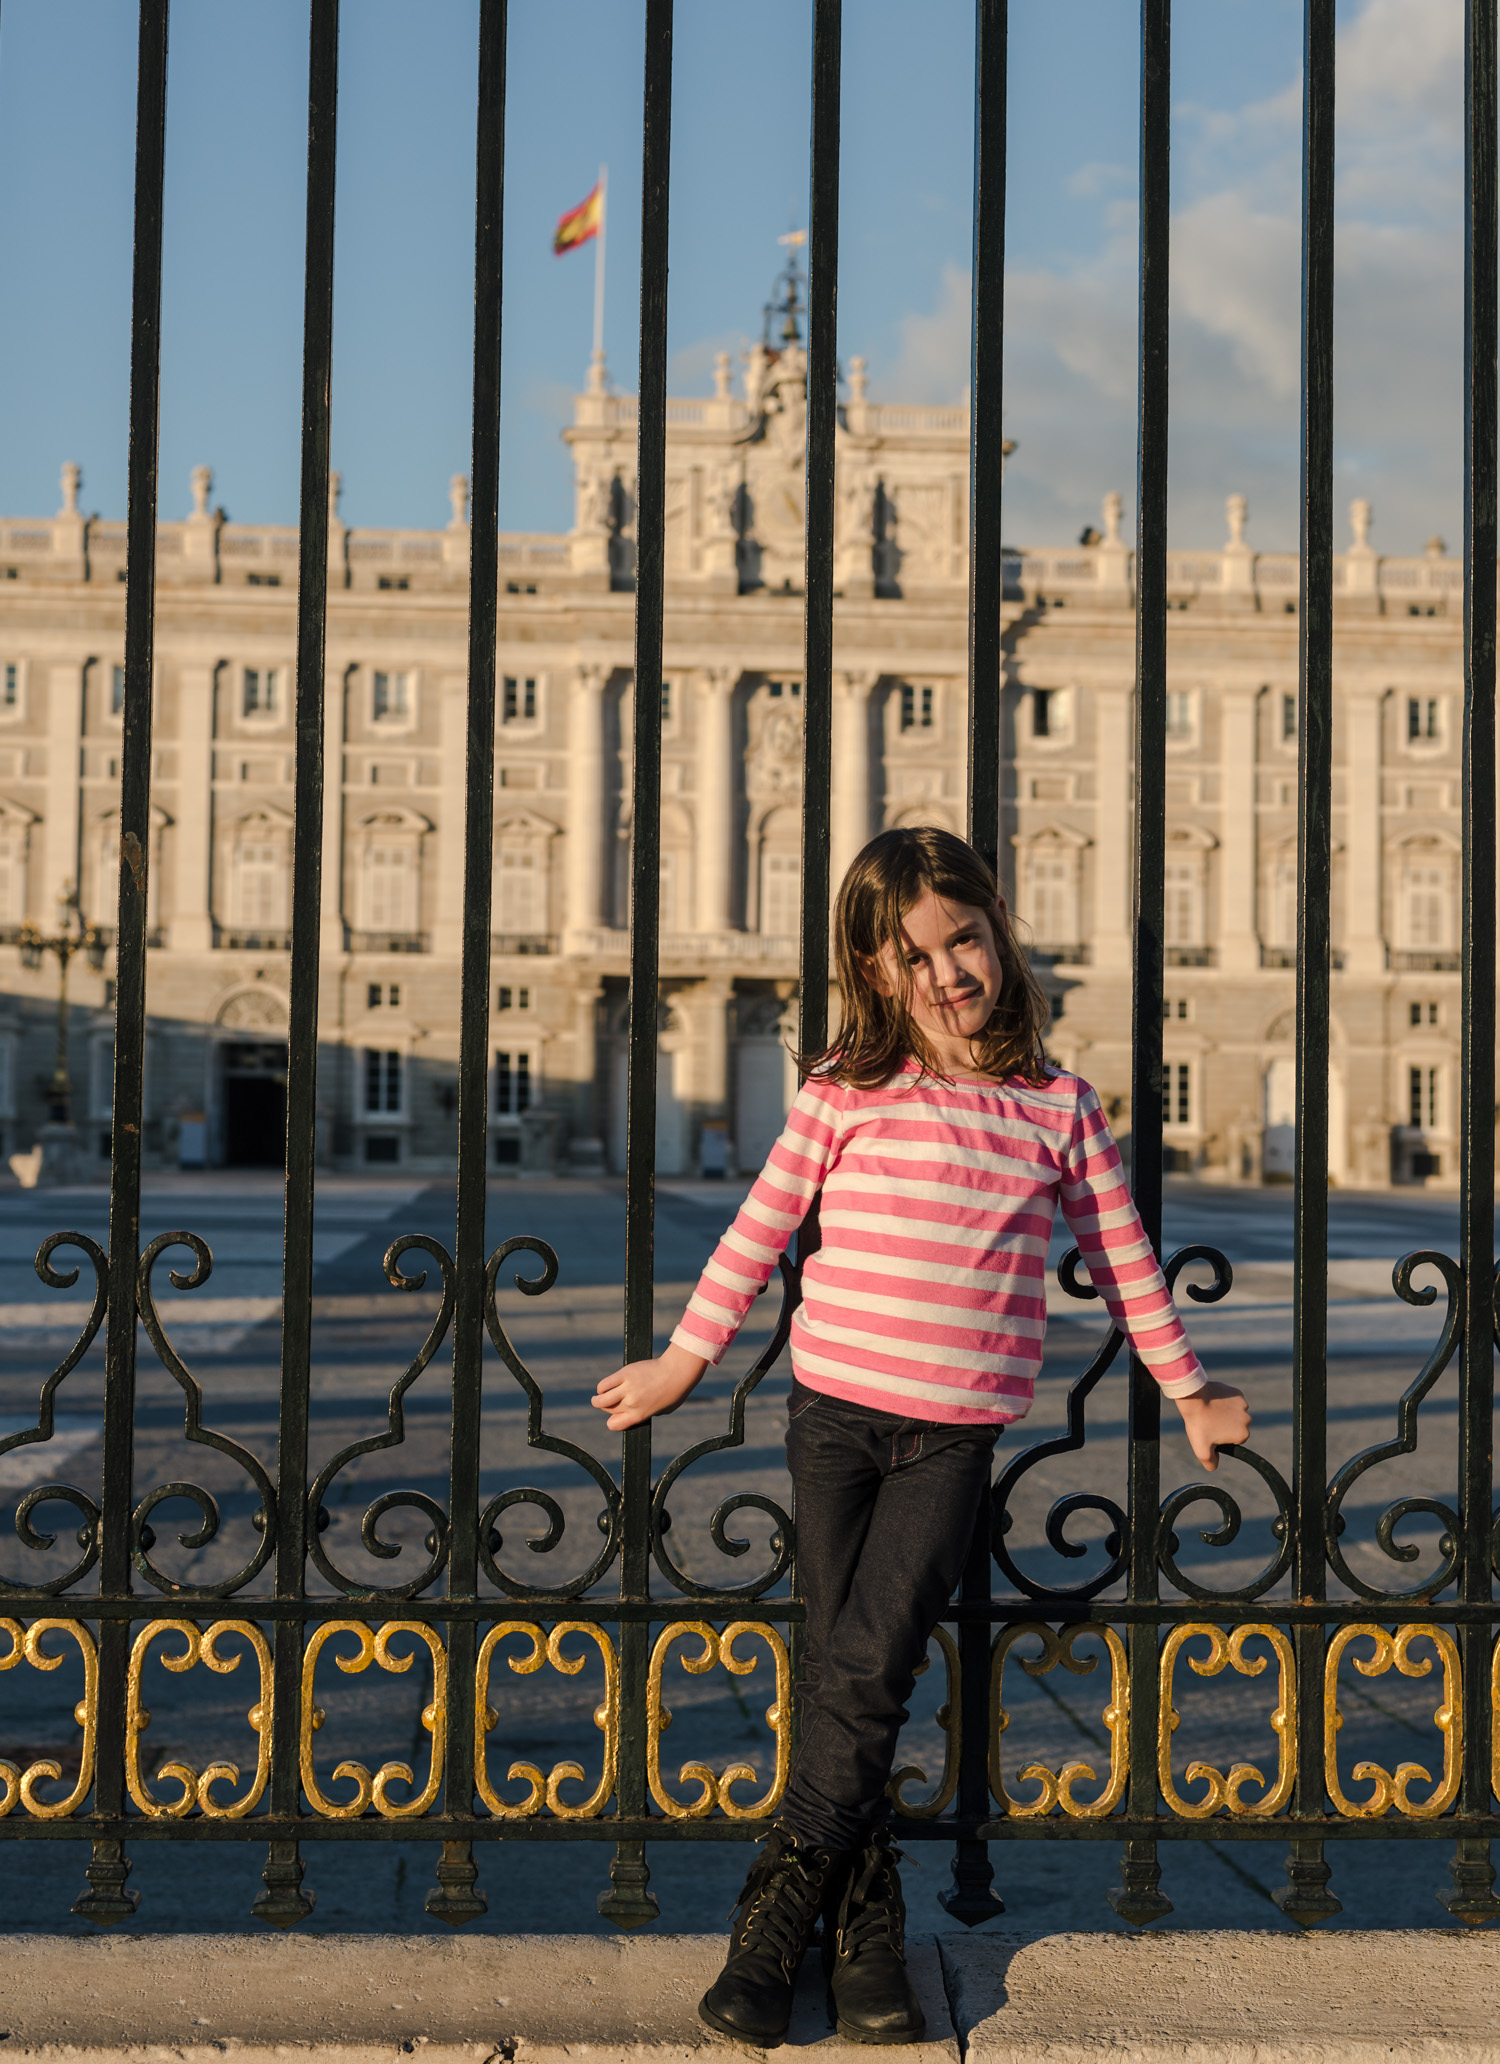 Locked out of the Madrid Royal Palace